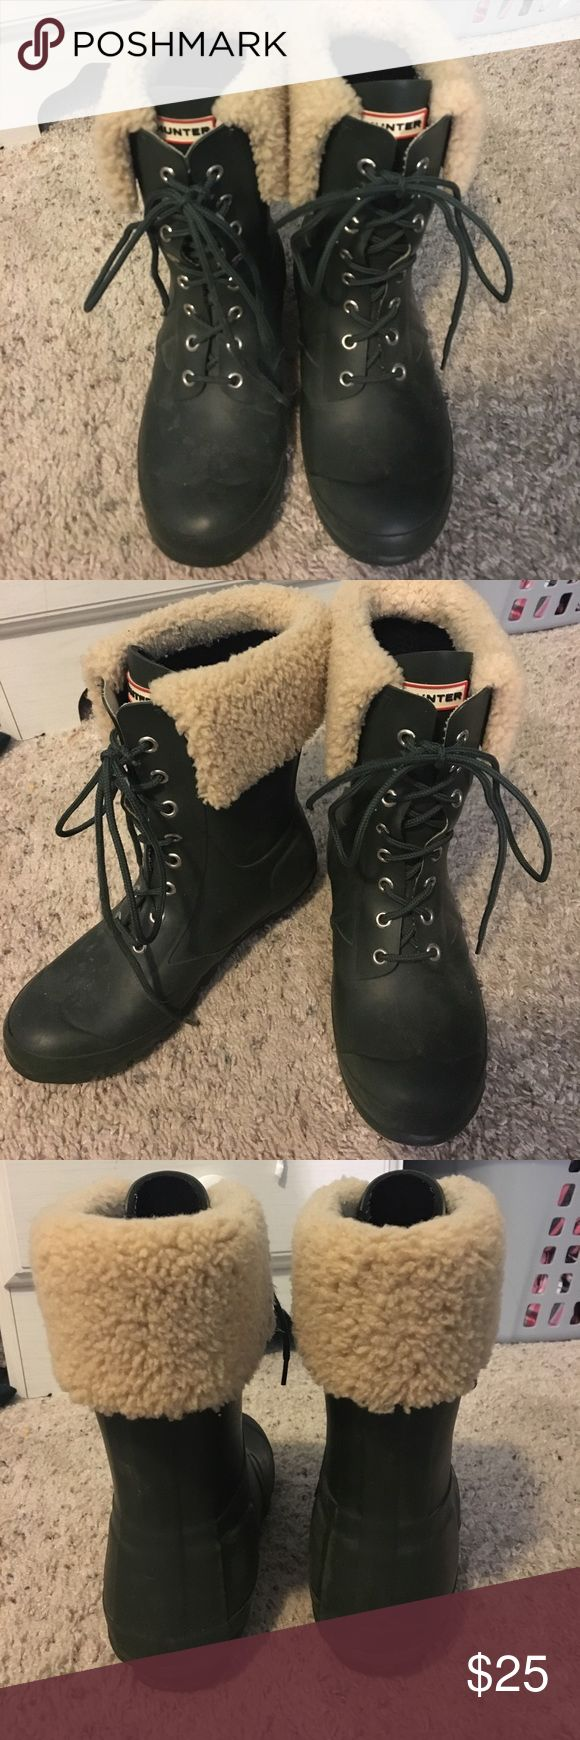 Hunter Boots Gently used green. Hunter boots. Mid height with fur at the top. Bought these from someone but they are just too big because they run bigger. Very good condition Hunter Boots Shoes Winter & Rain Boots